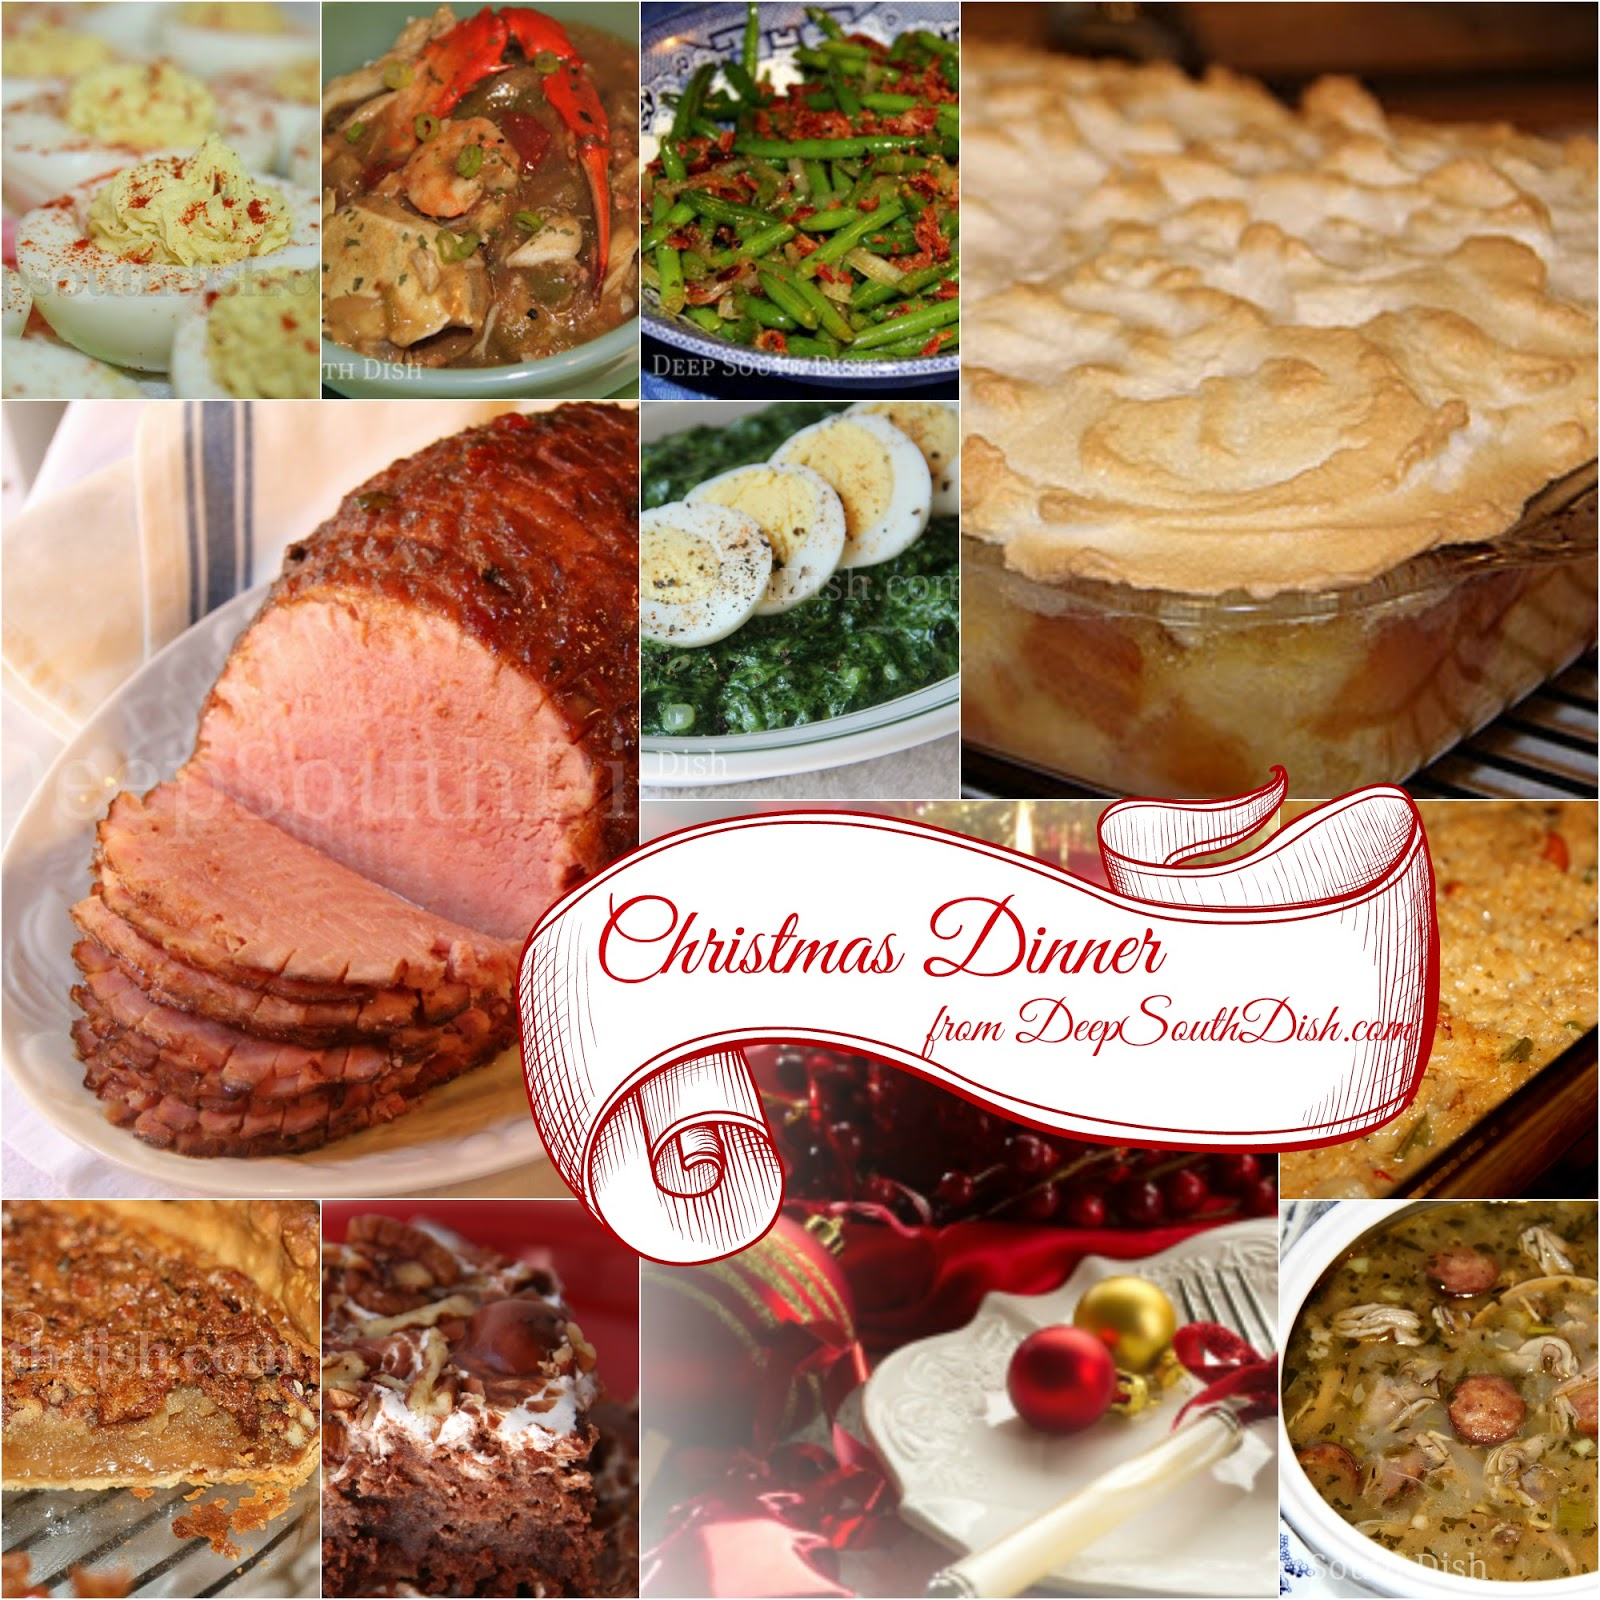 Deep South Dish: Southern Christmas Dinner Menu and Recipe Ideas